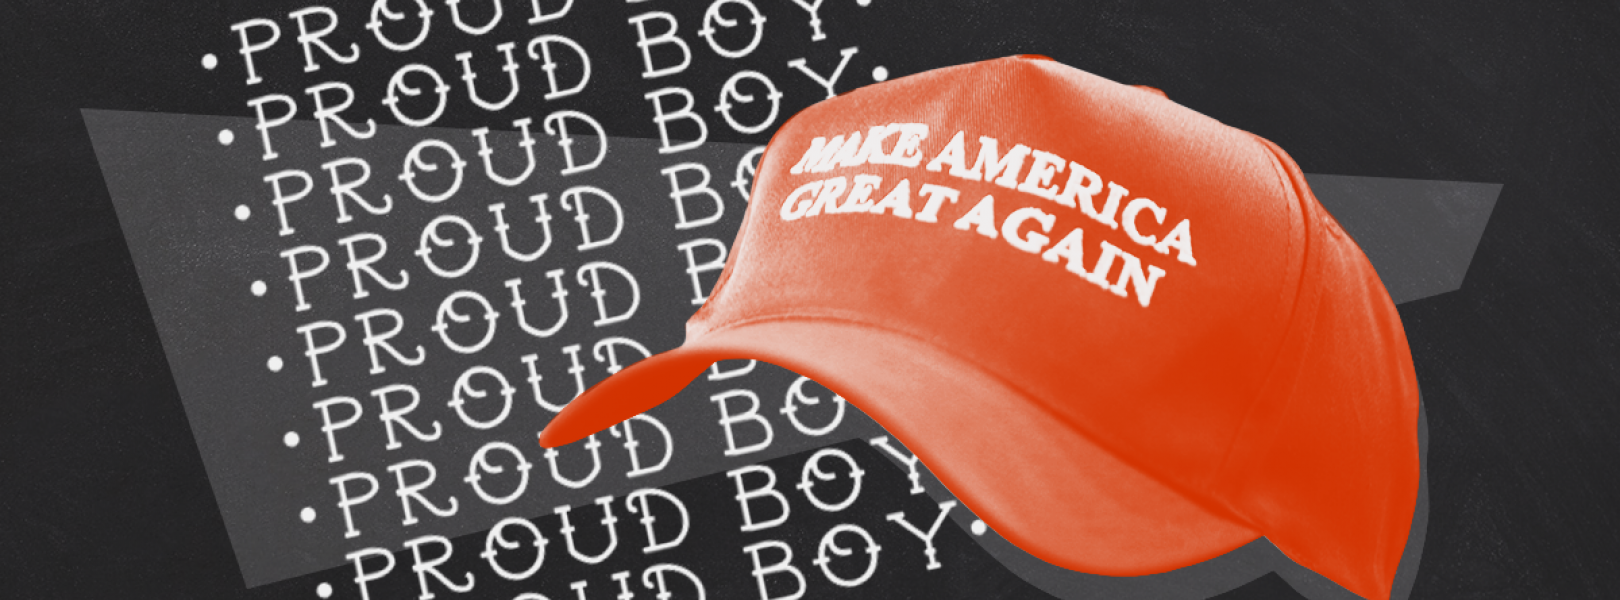 Media-Ignore-Proud-Boys-Trump-Rally.png